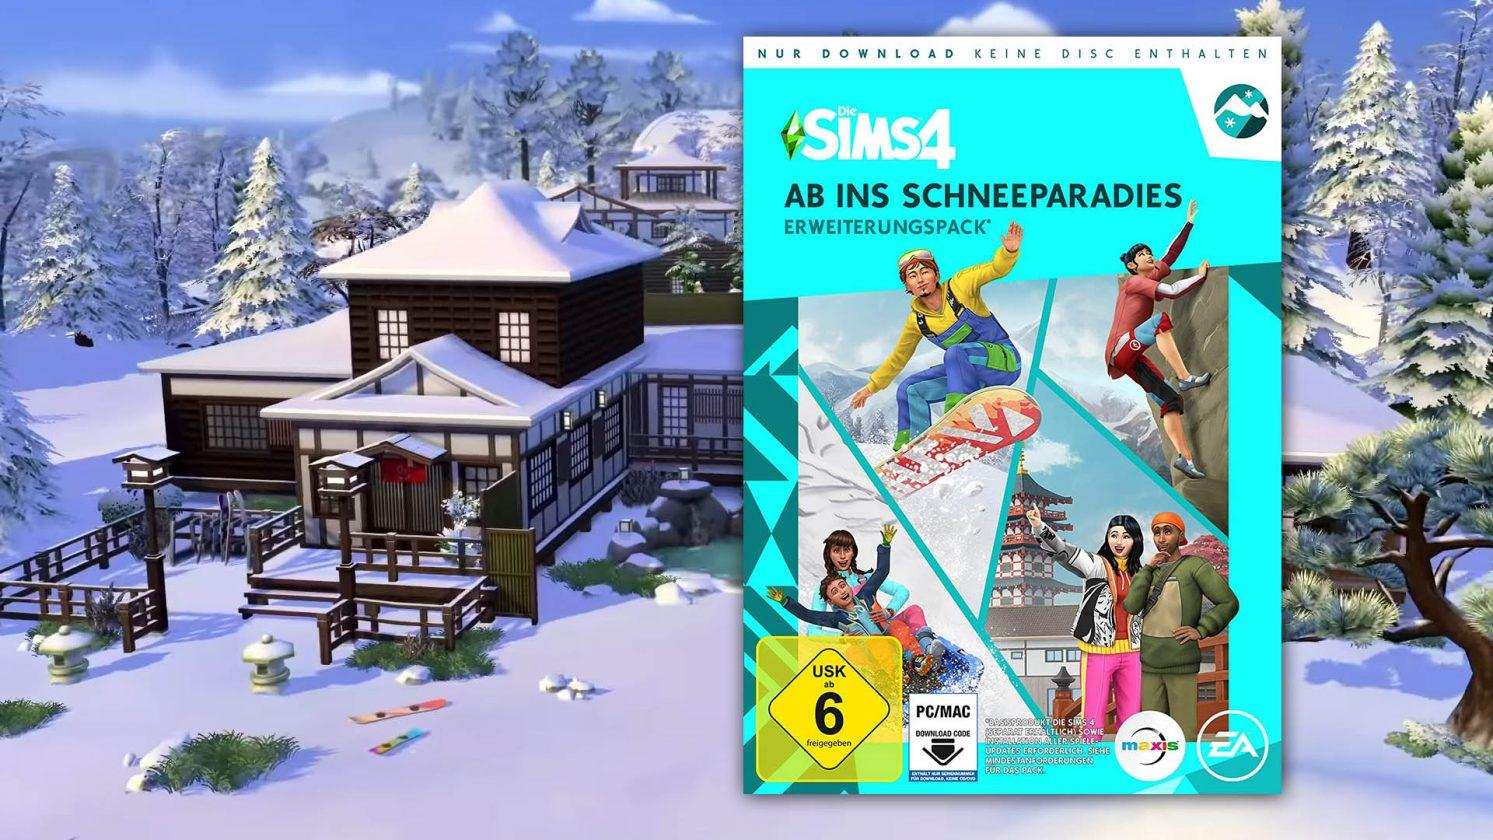 The Sims 4: Off To Snow Paradise Précommandez Maintenant, Uniquement